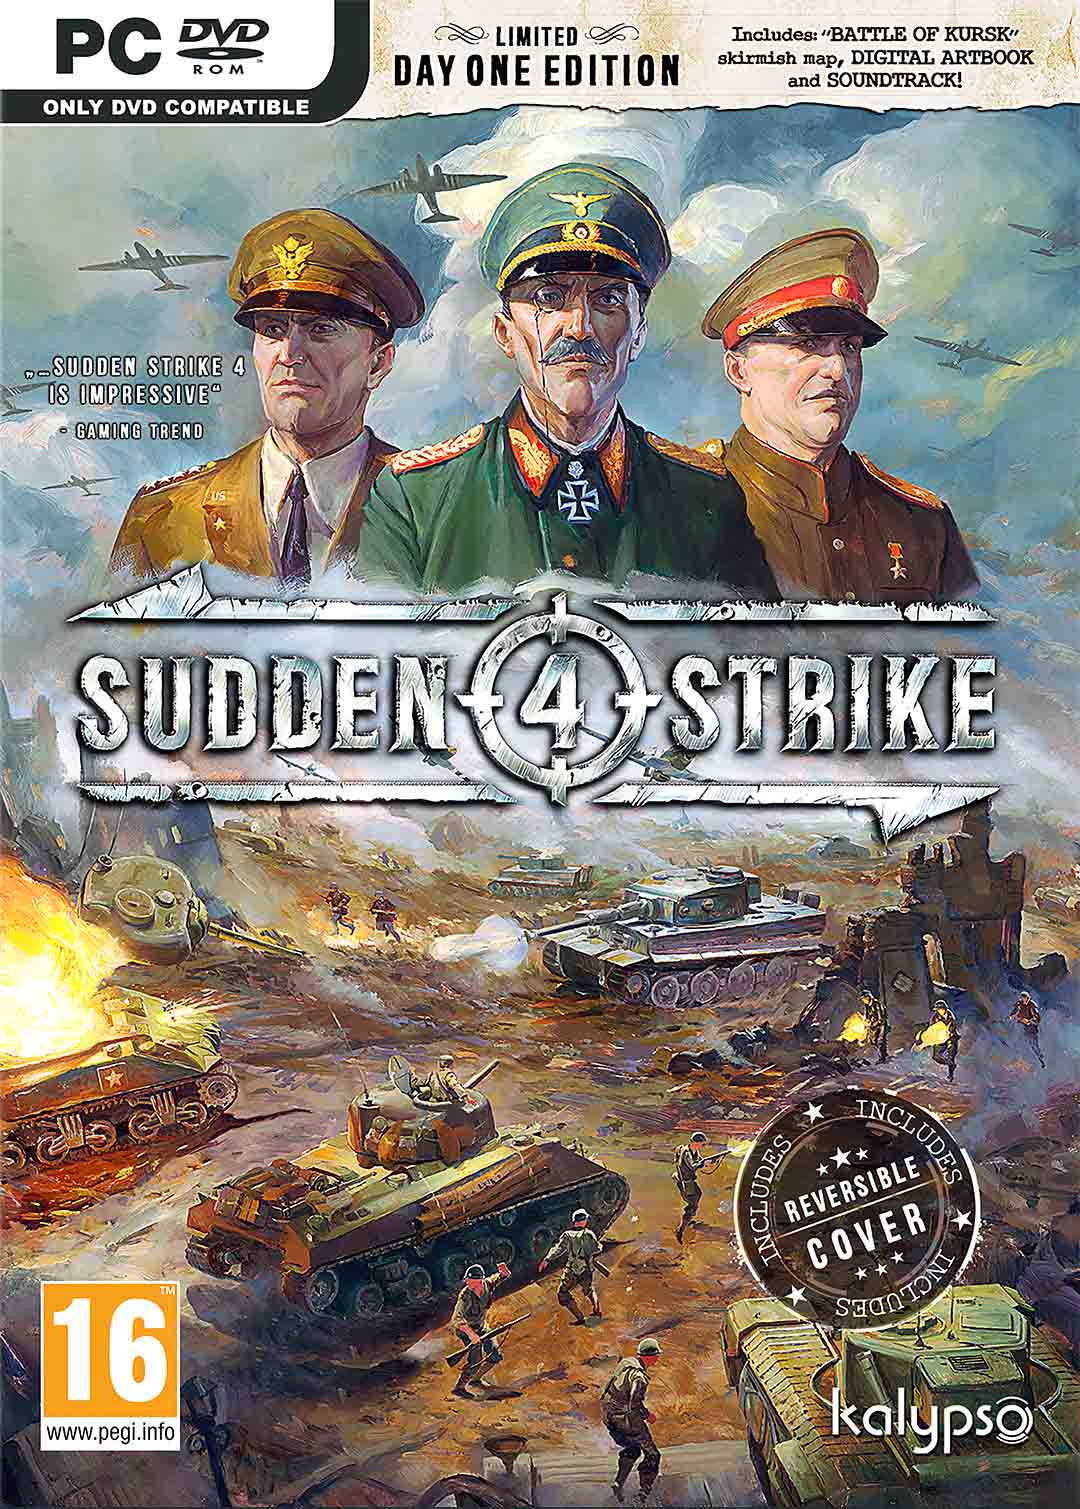 Sudden Strike 4 Limited Day One Edition - PC